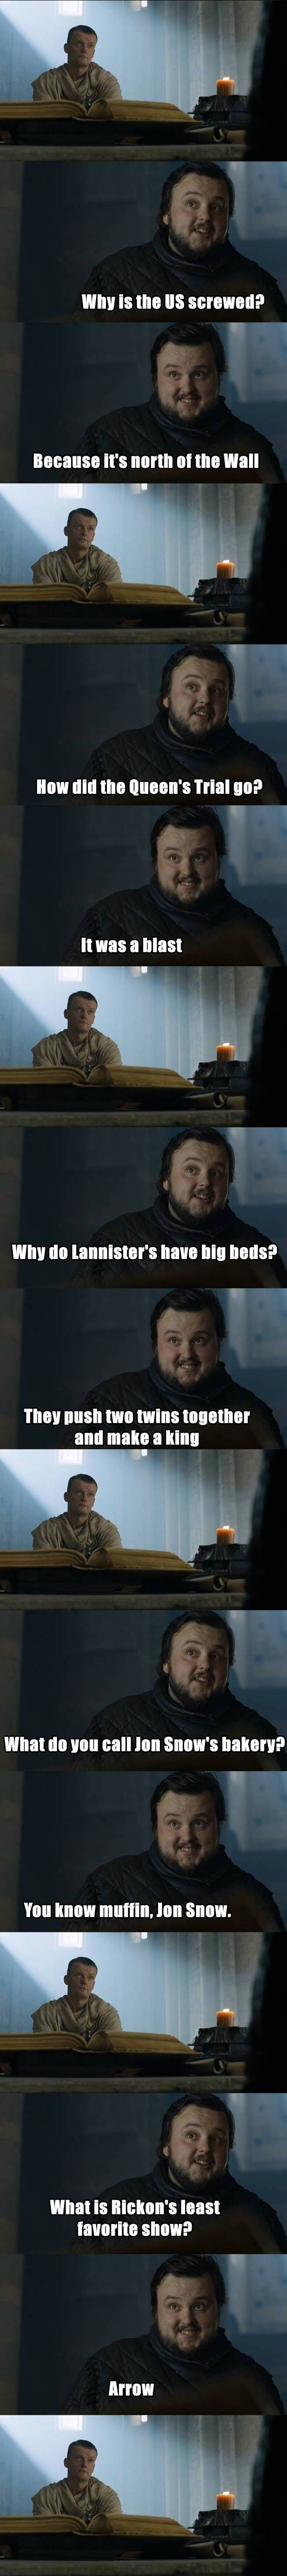 sam-citadel-memes 2. Game of thrones funny humour meme. Samwell Tarly